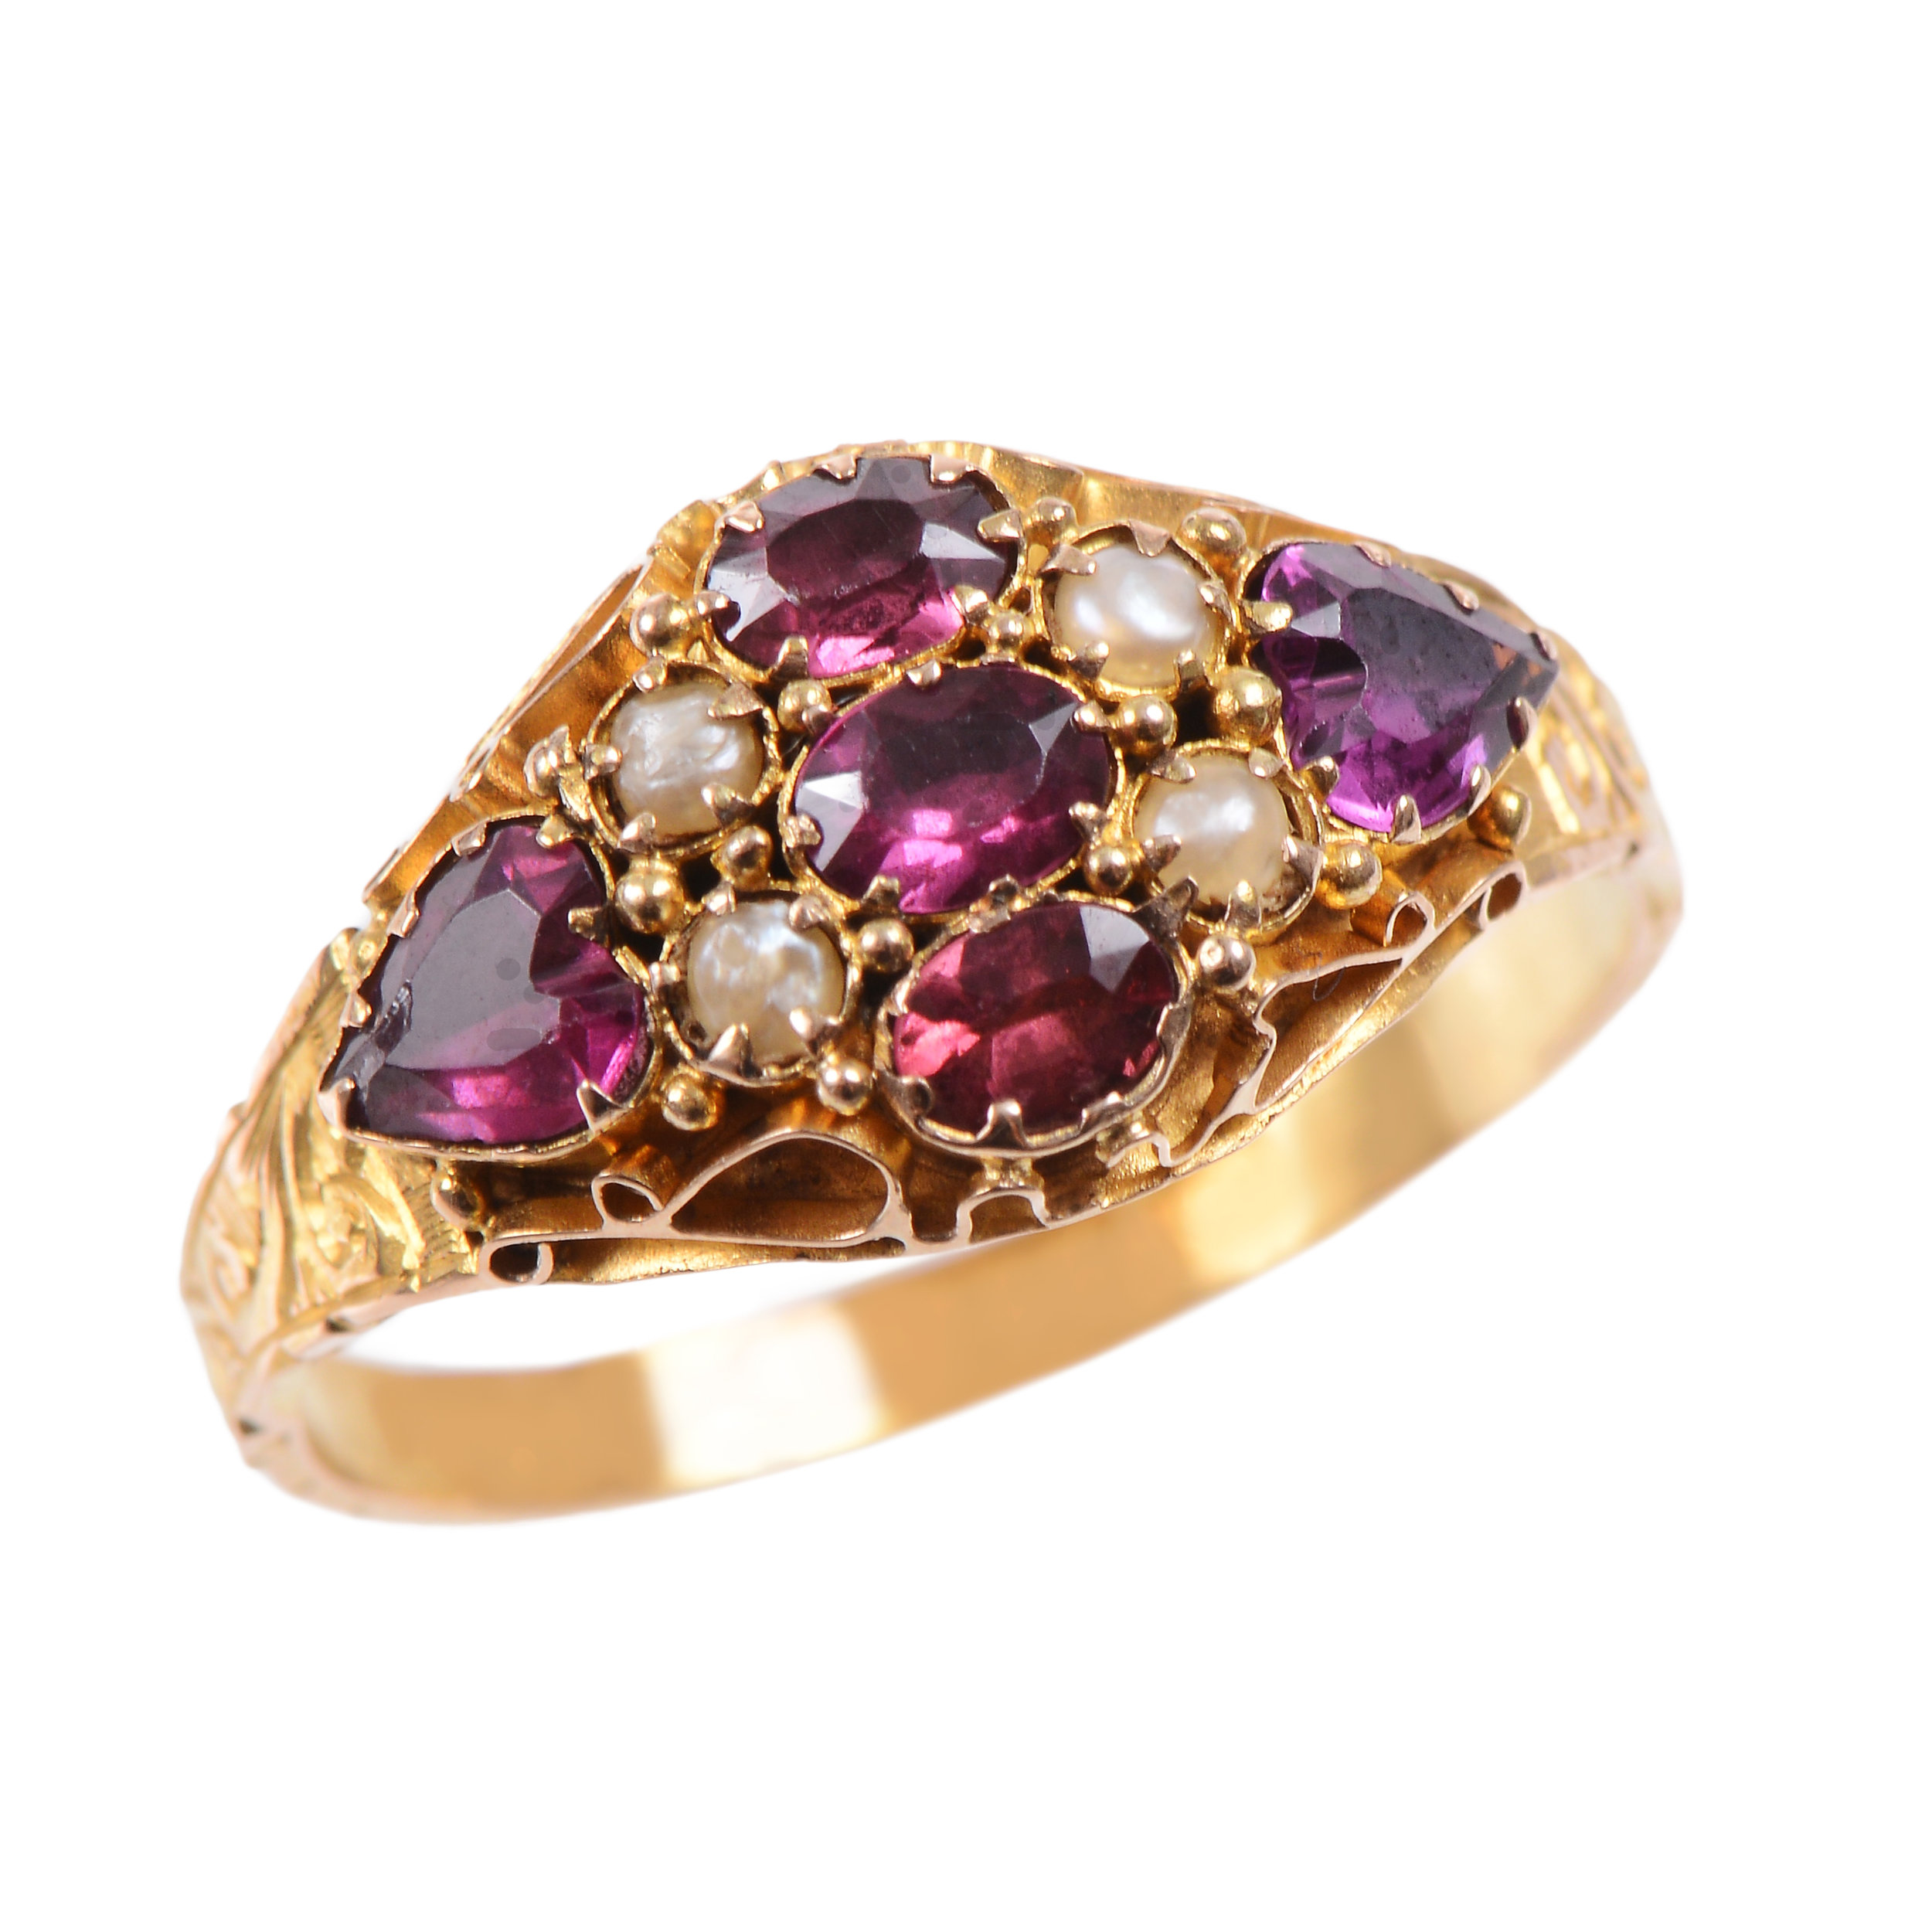 Turner and Tatler Victorian 15 KT Engraved Gold and Garnet and Pearl Ring, Available at Turner and Tatler